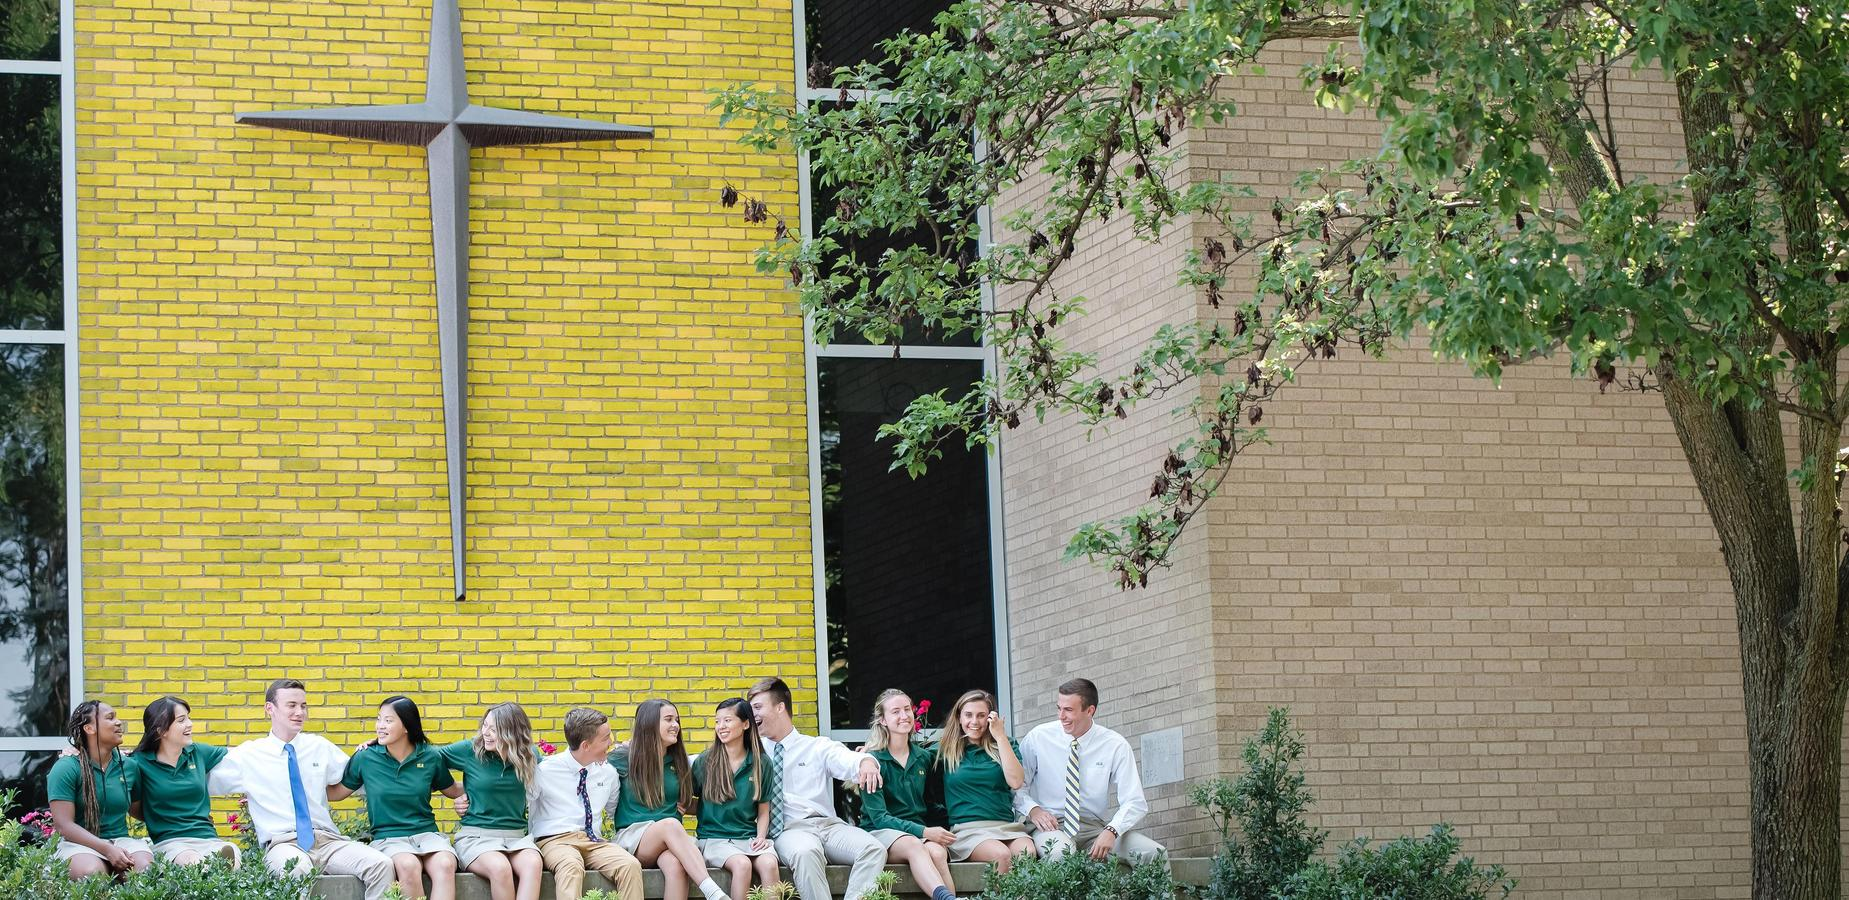 Students laugh together outside